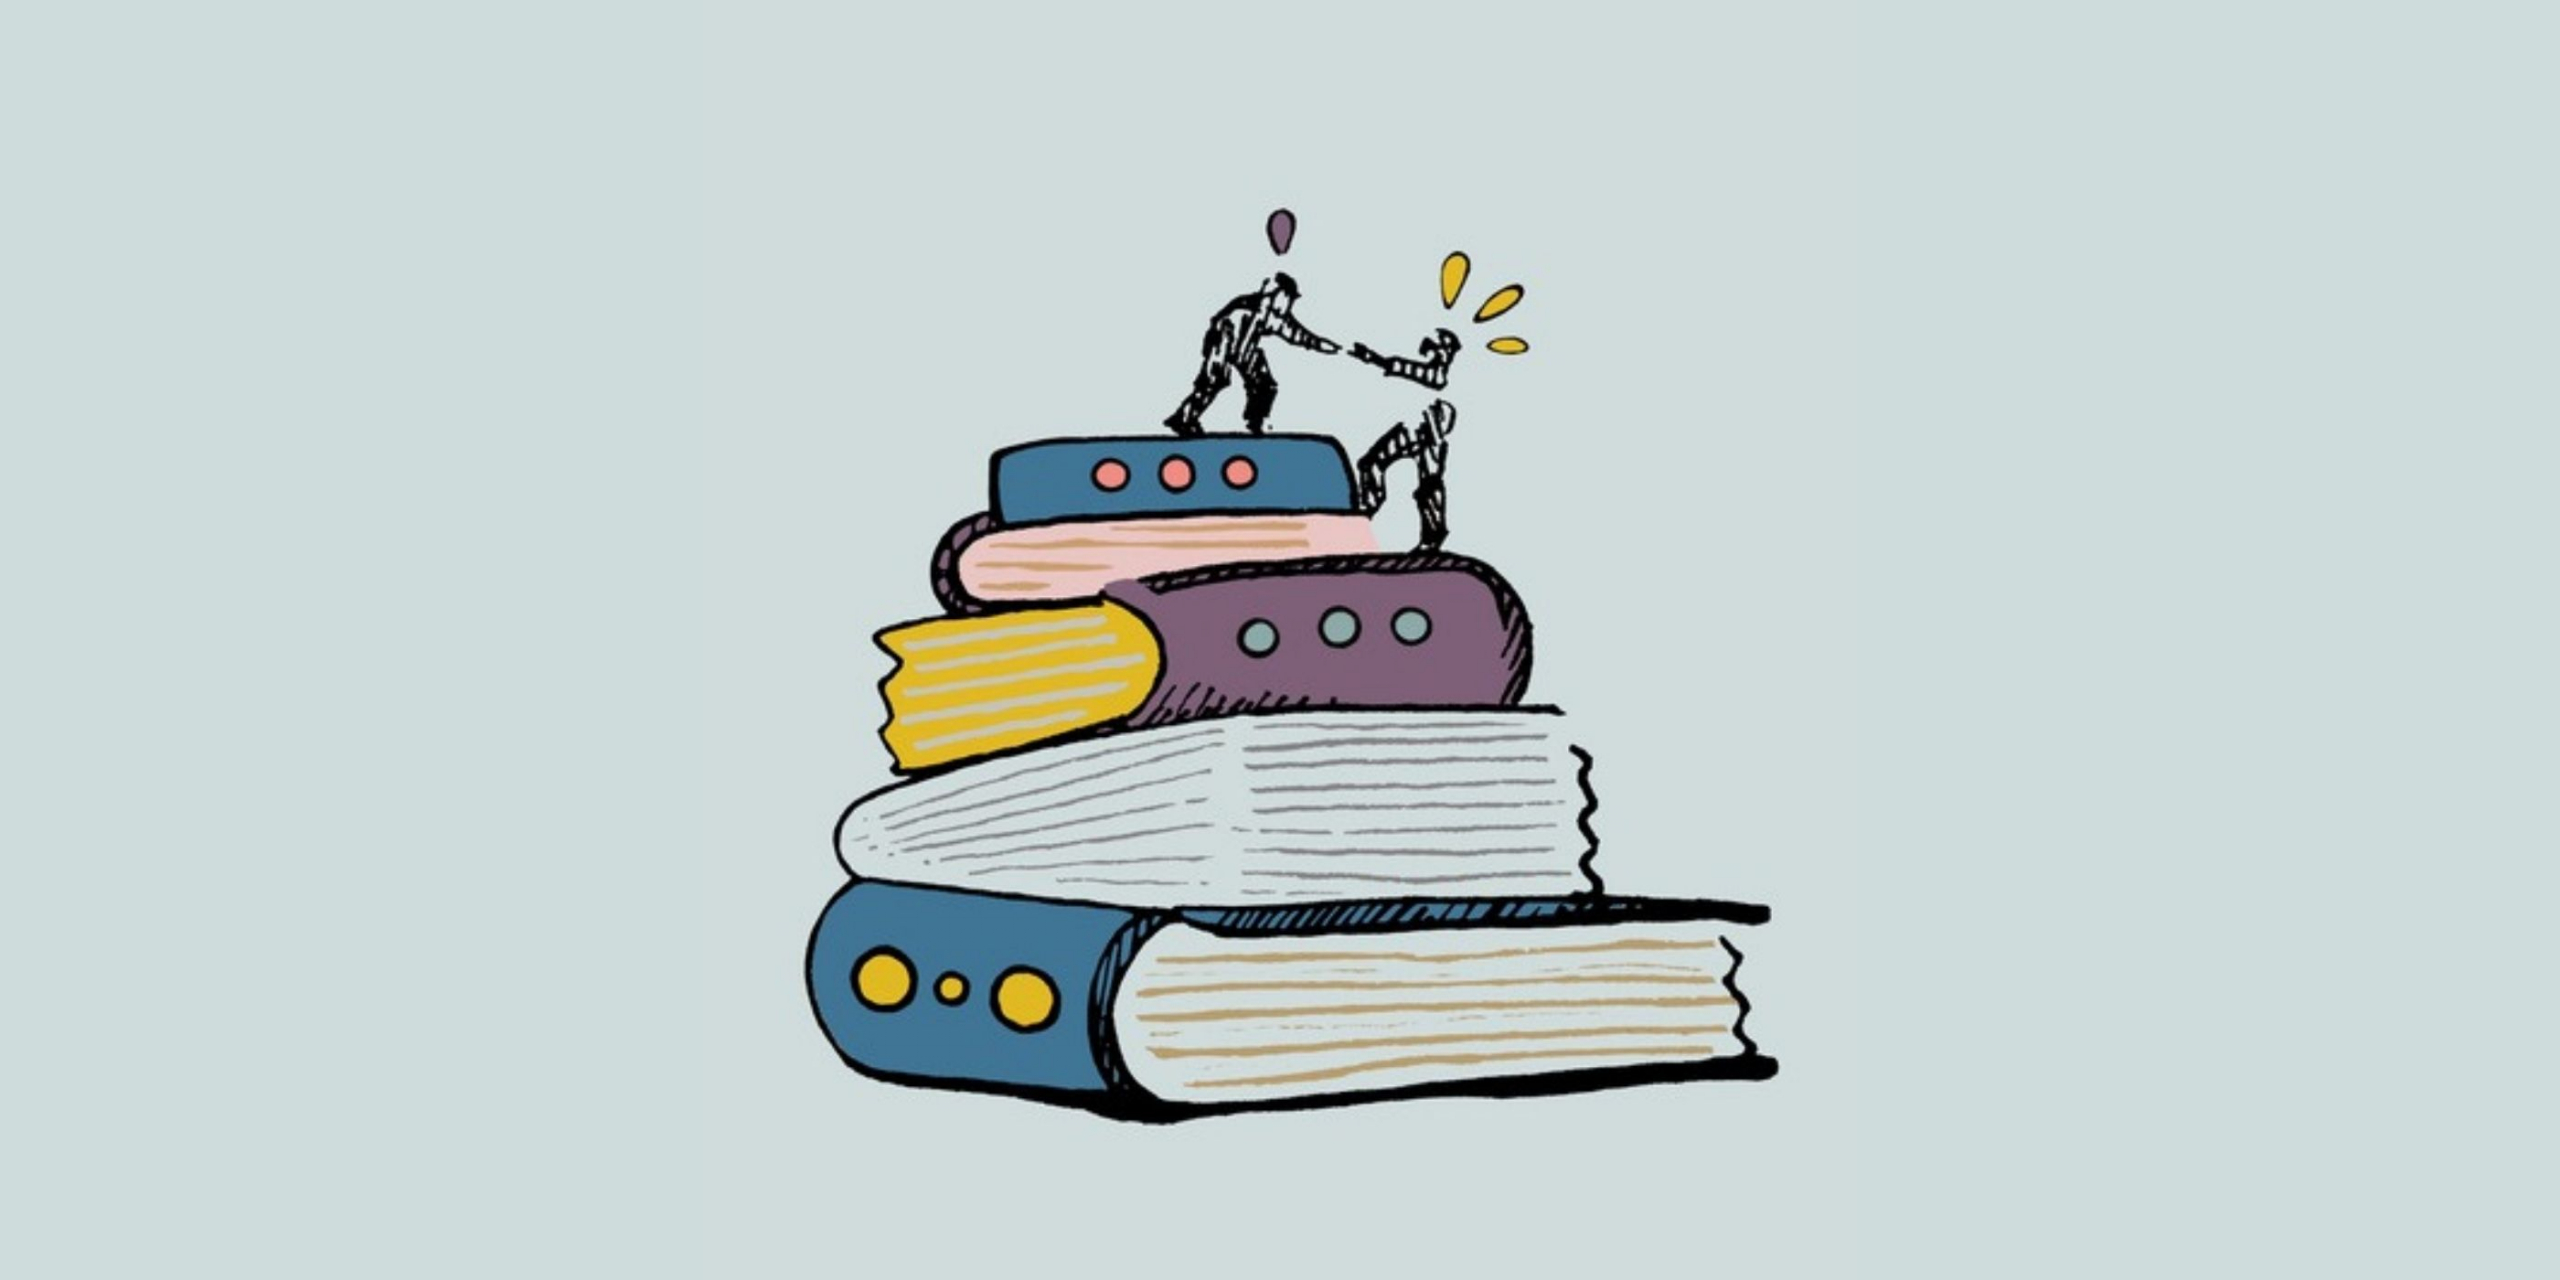 image shows a person helping another person climb to the top of a pile of books